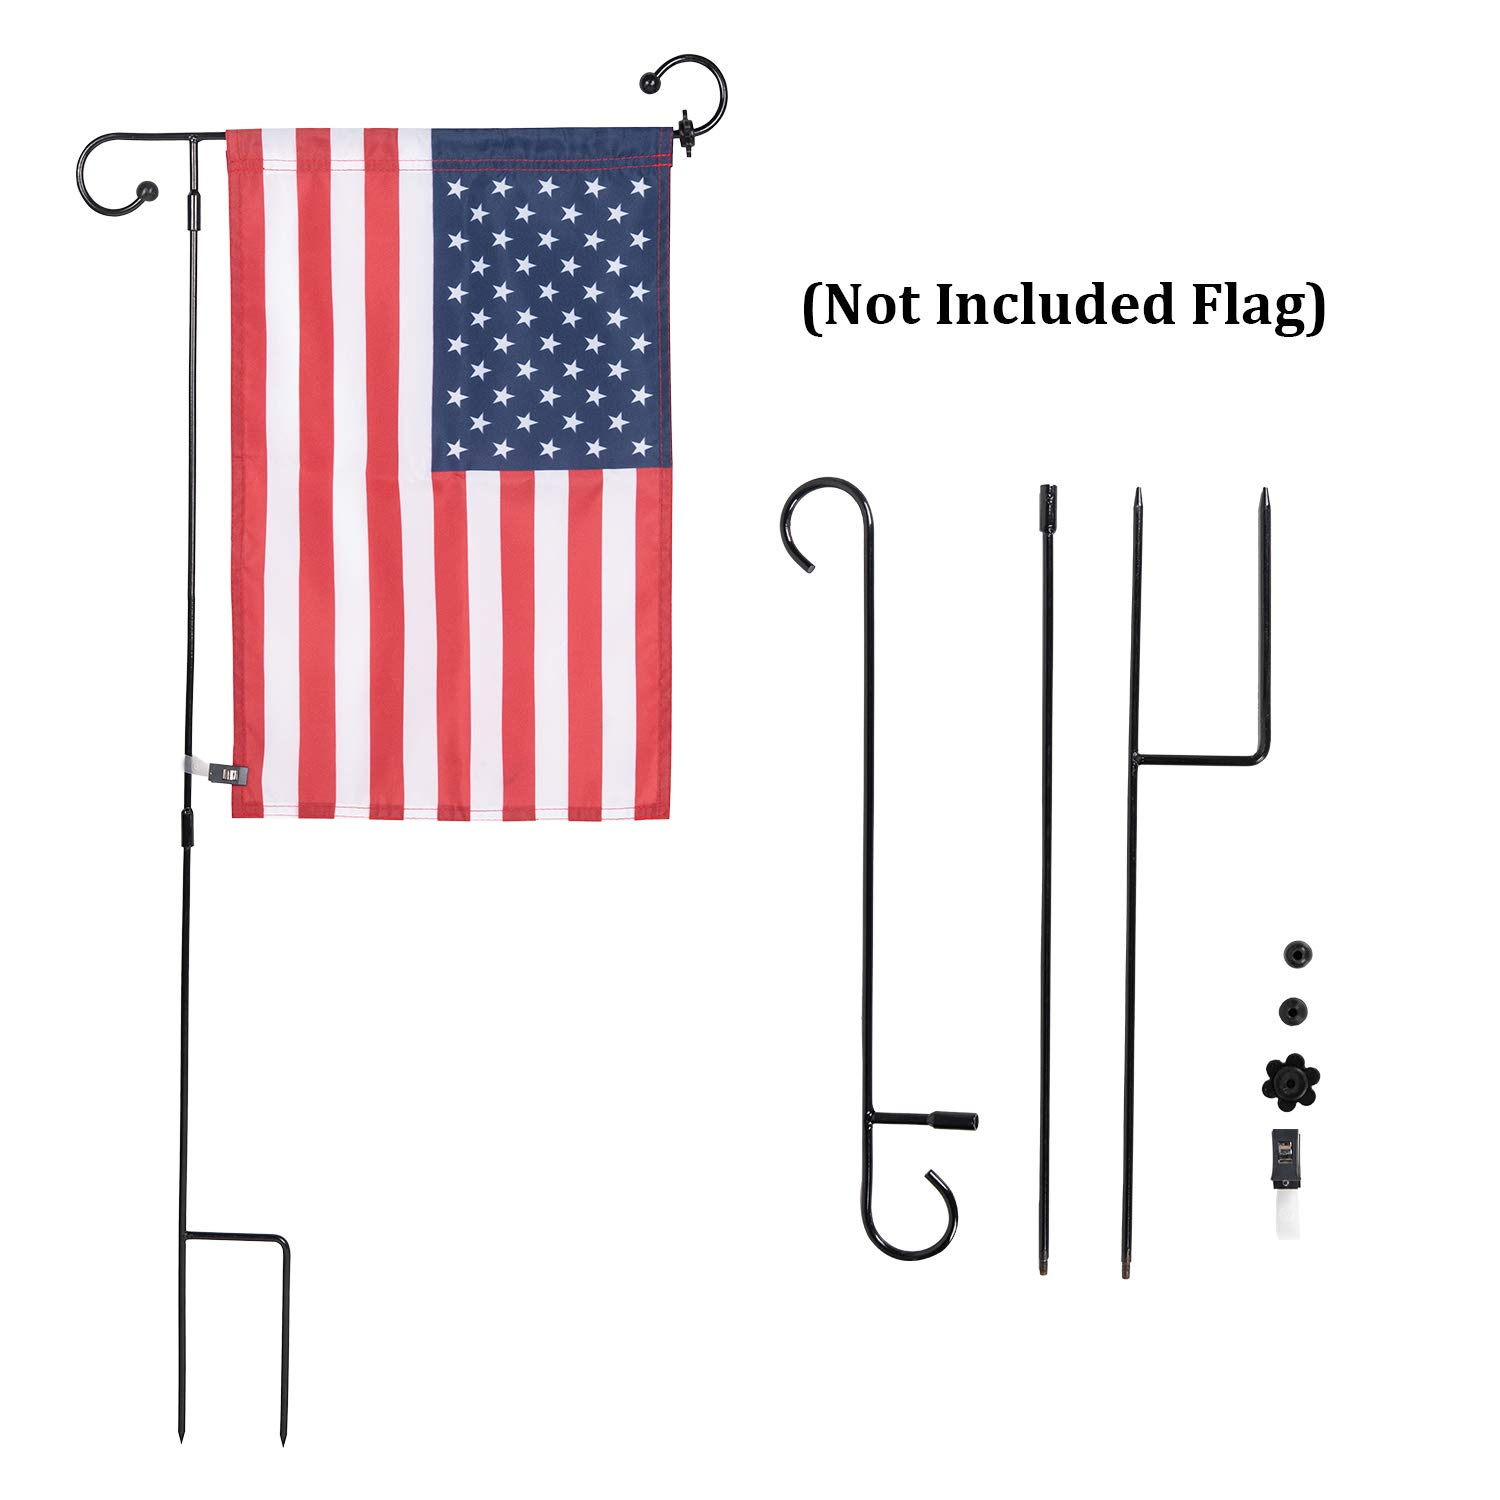 NQ Garden Flag Stand Flagpole, Premium Metal Powder-Coated Weather-Proof Paint with Anti-Wind Clip for Easter Garden Flag (Black) (1 Pcs)